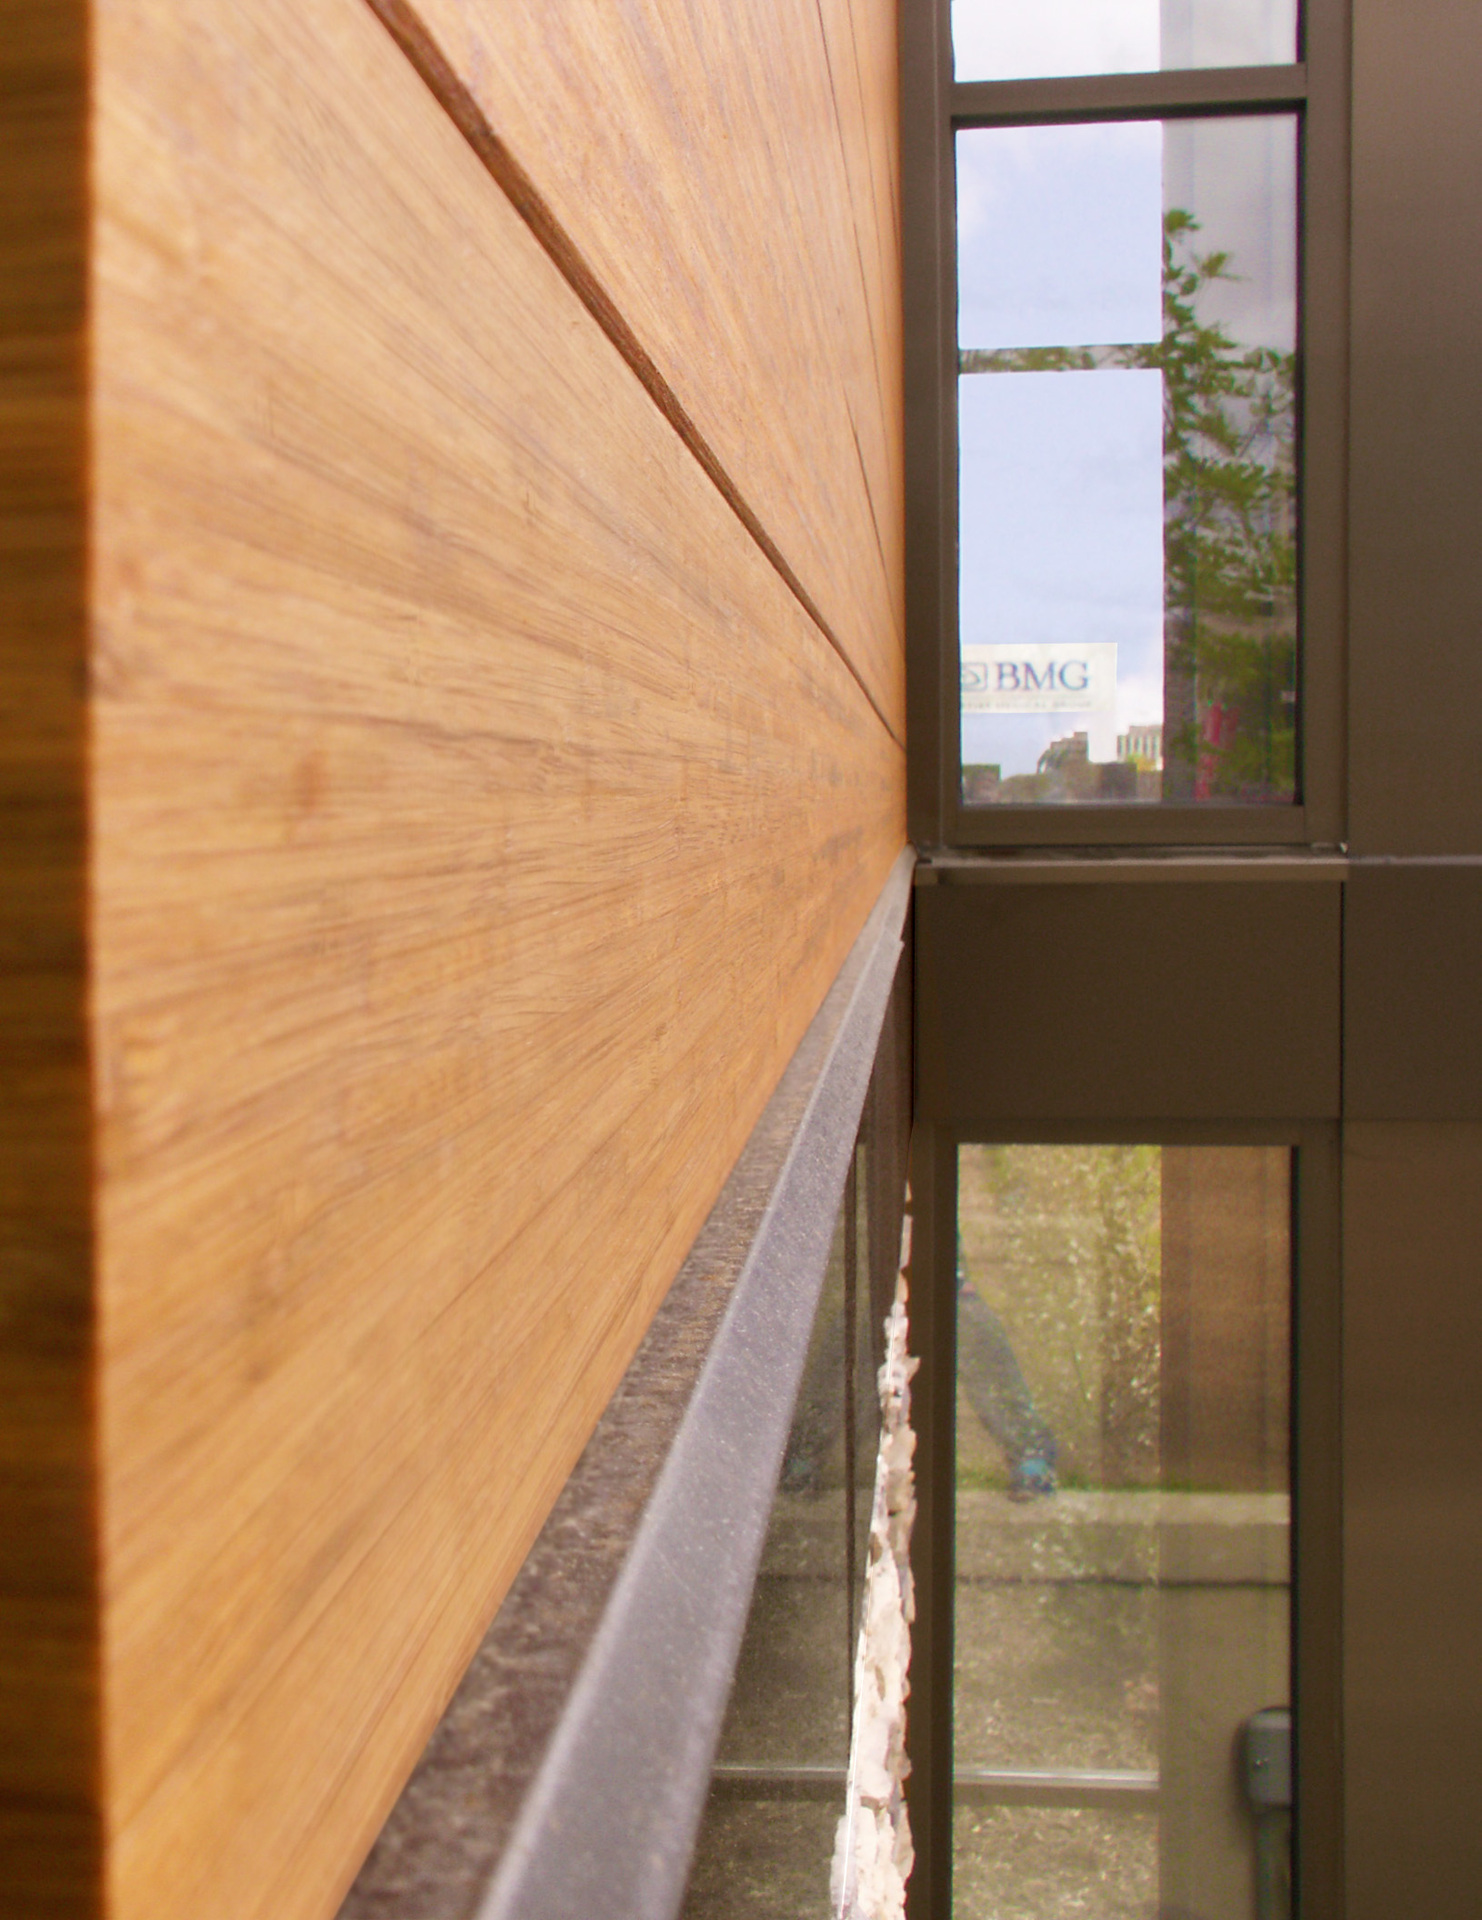 The use of Lamboo® Rainscreen™ - Exterior Siding/Cladding is seen throughout the final design.